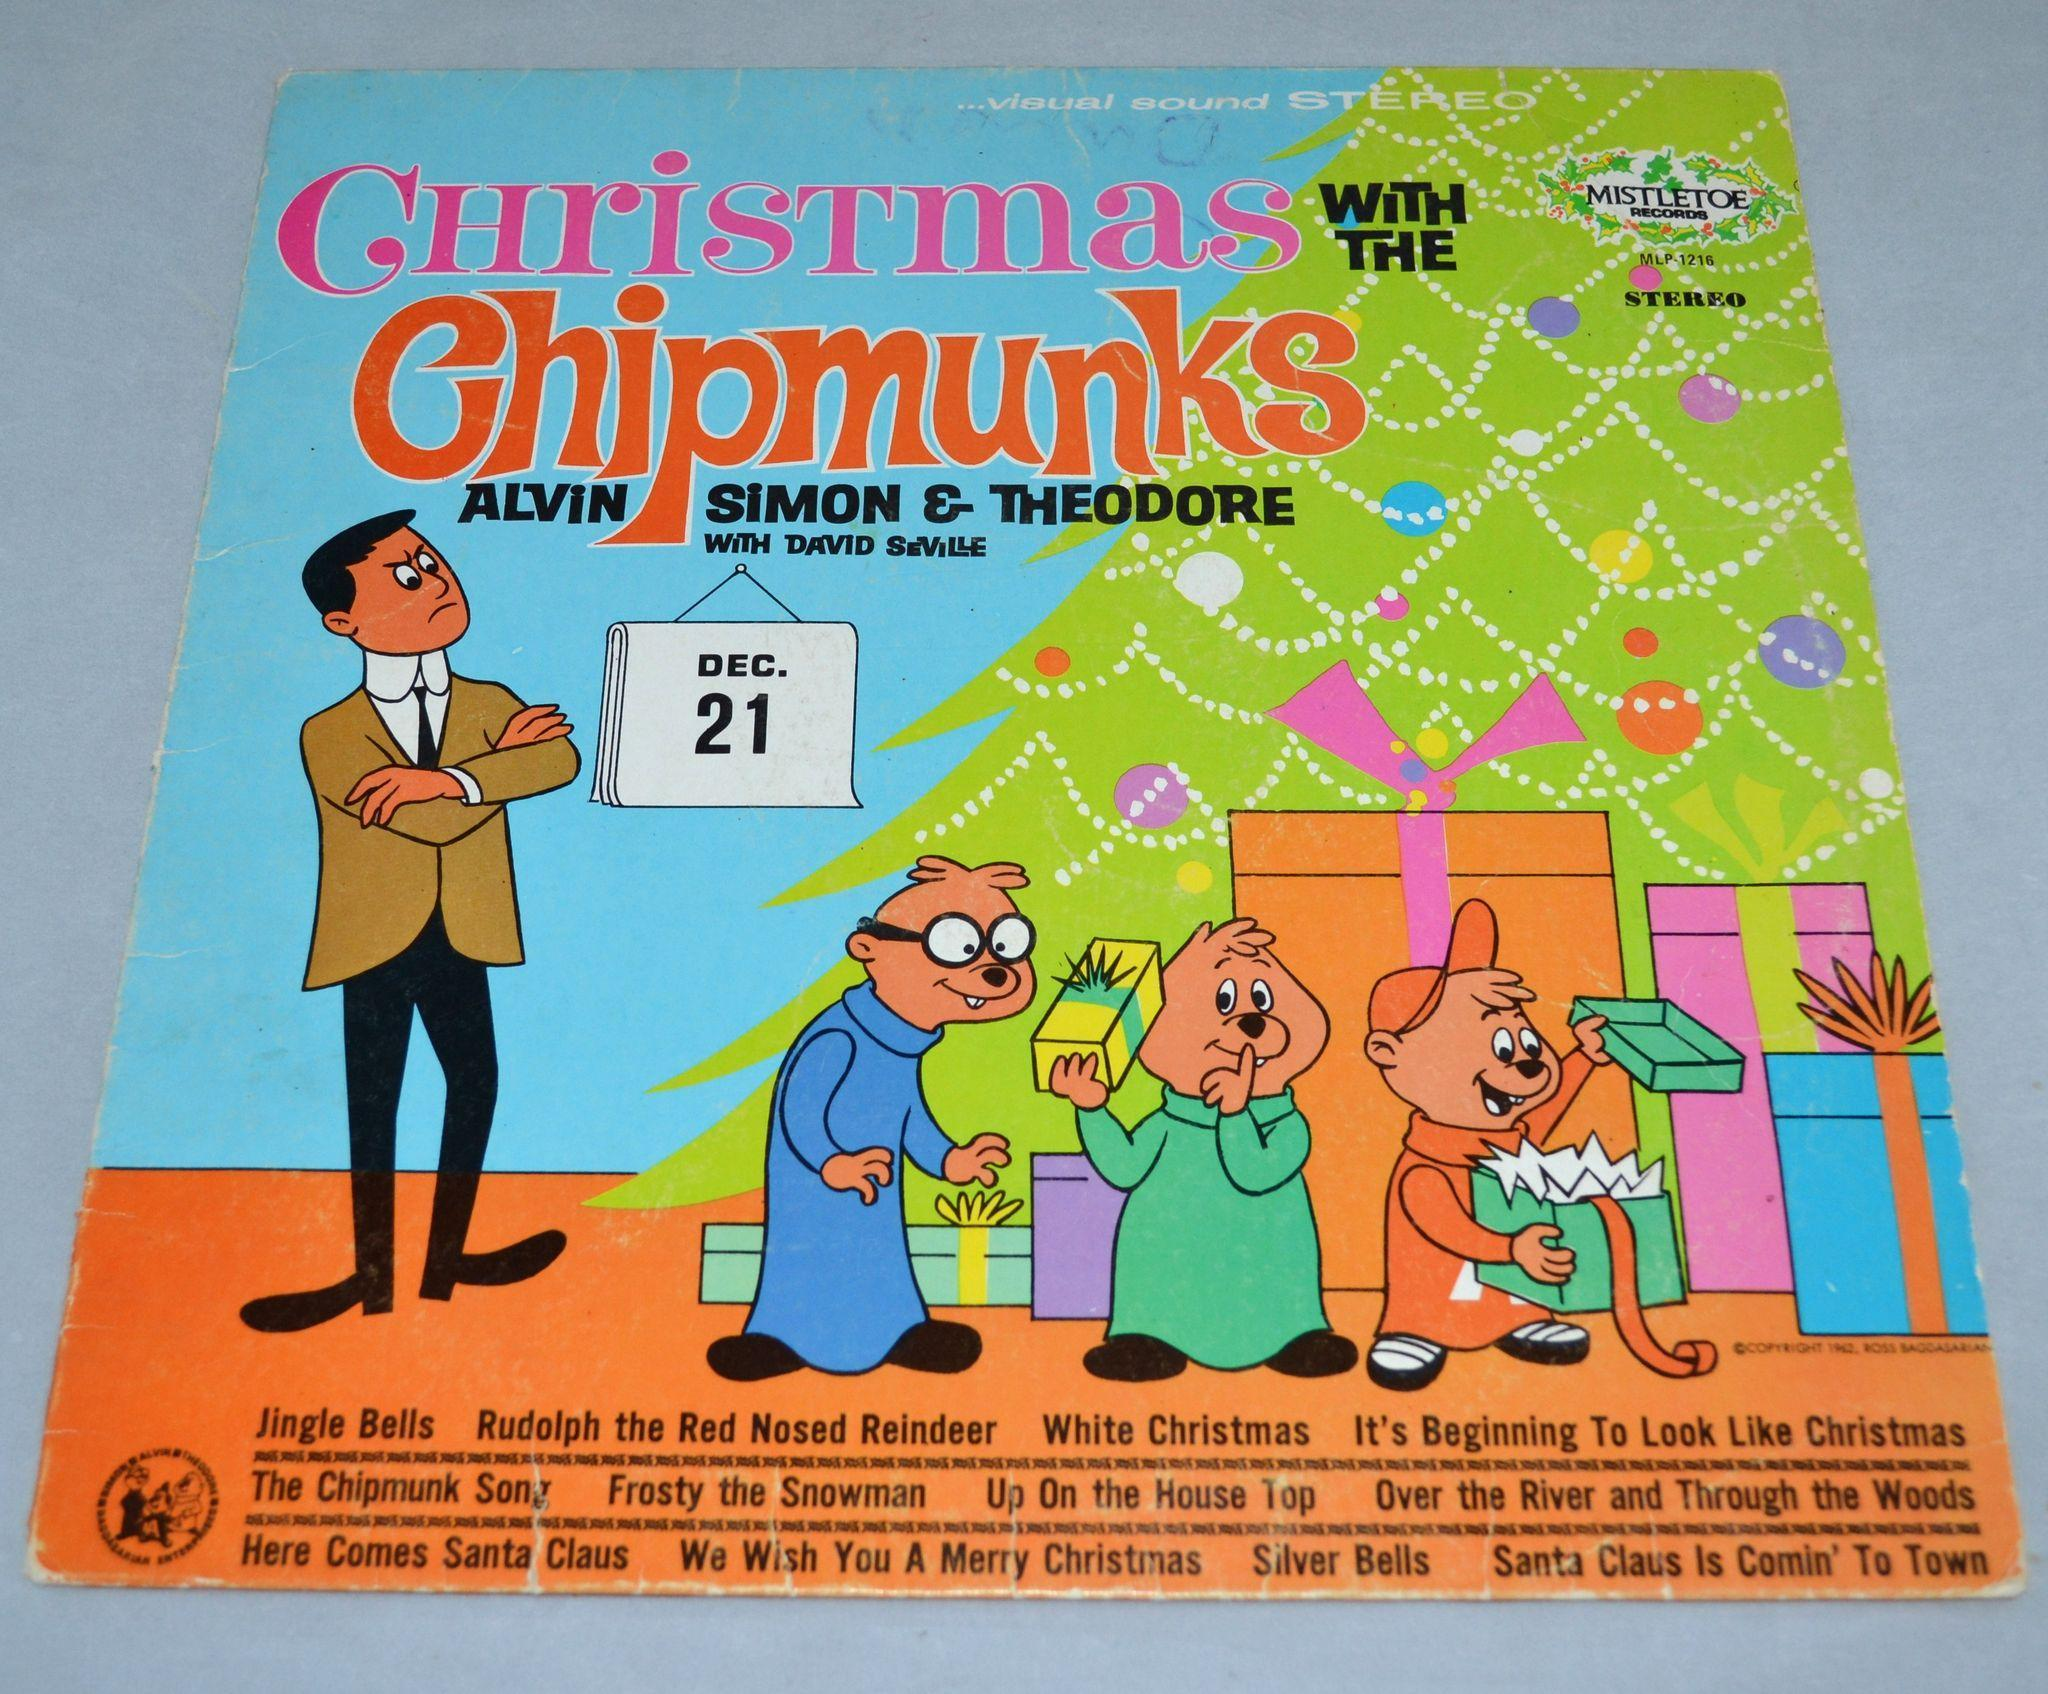 1962 Christmas with the Chipmunks LP Record : Kitsch & Couture ...